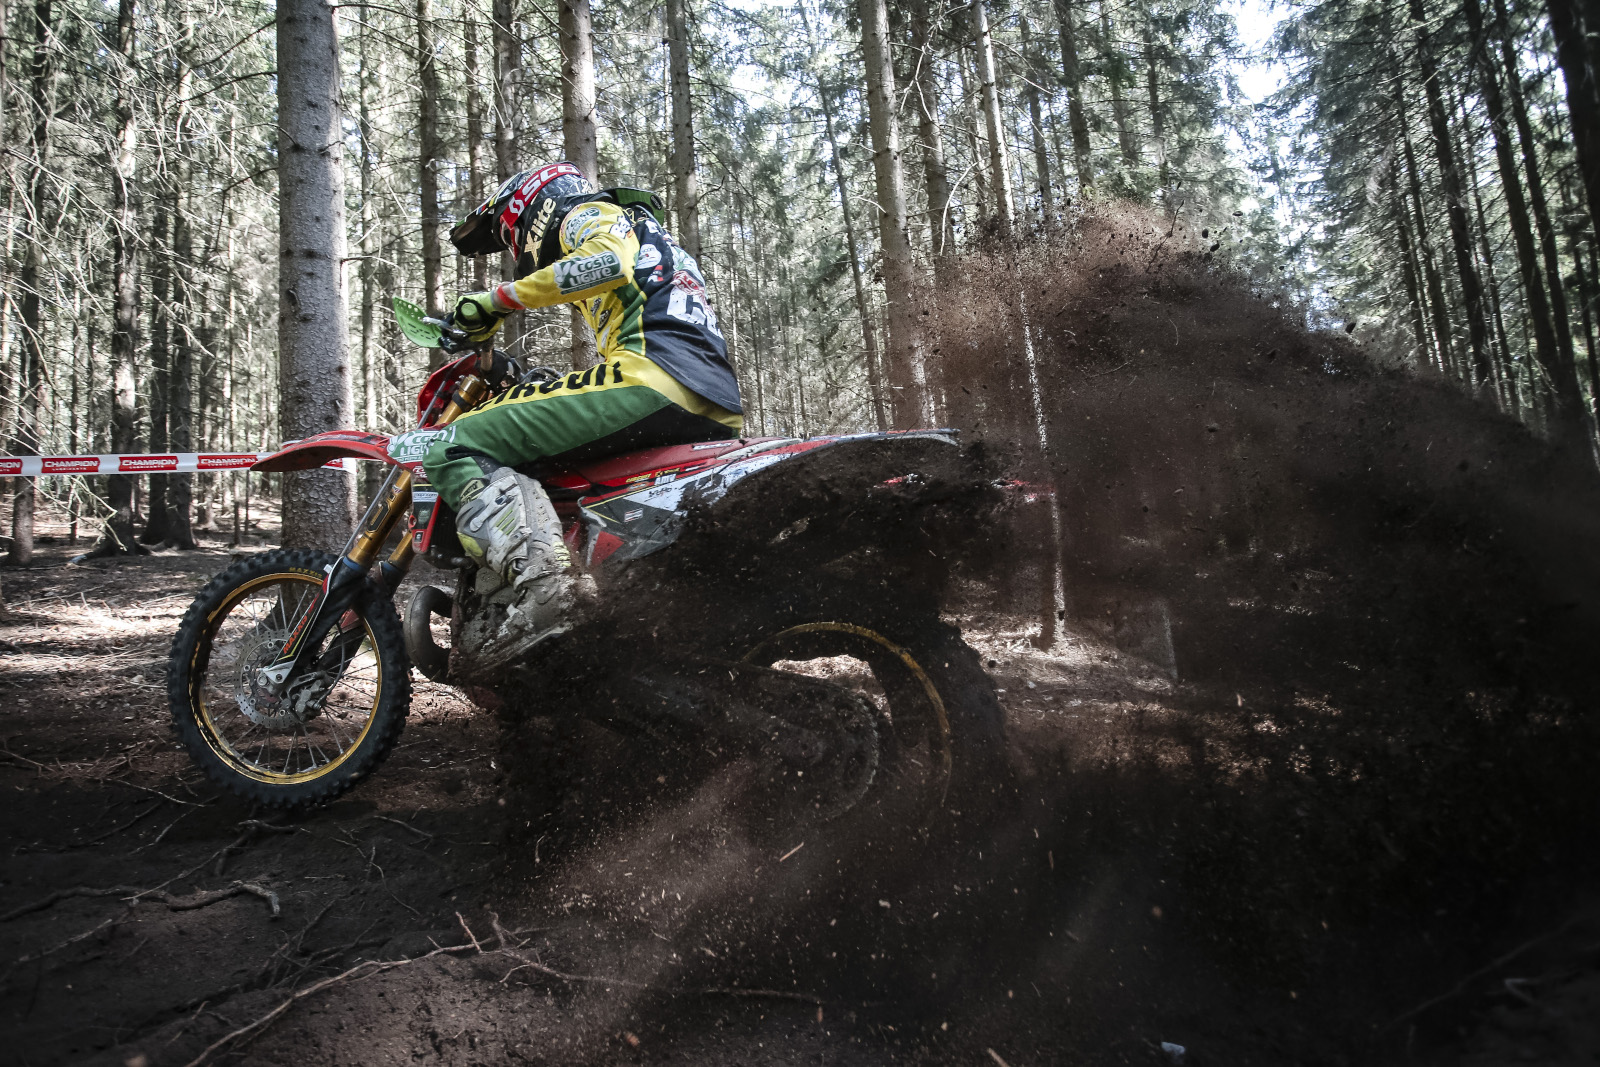 2019 EnduroGP World Championship showdown this weekend in France